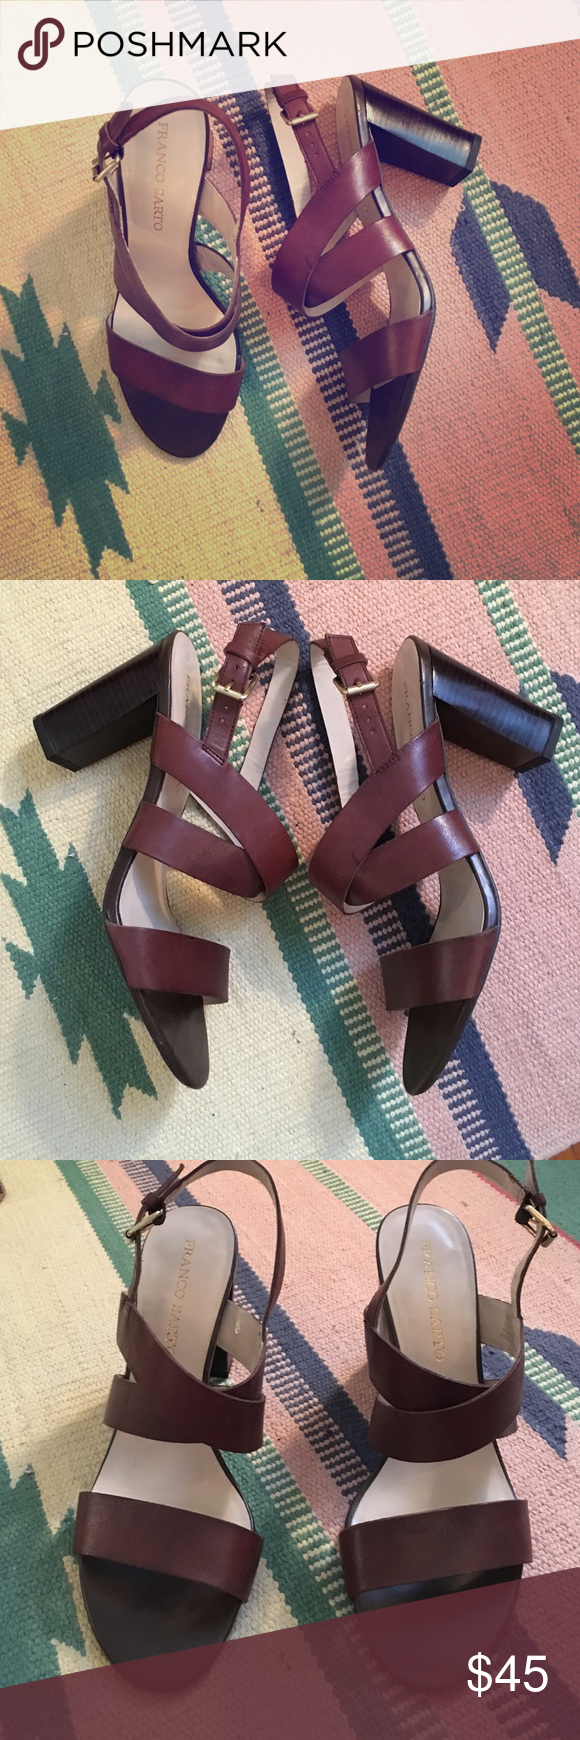 Franco Sarto heels Mint condition! Extremely comfortable! Great style, a closet staple heel! Franco Sarto Shoes Heels